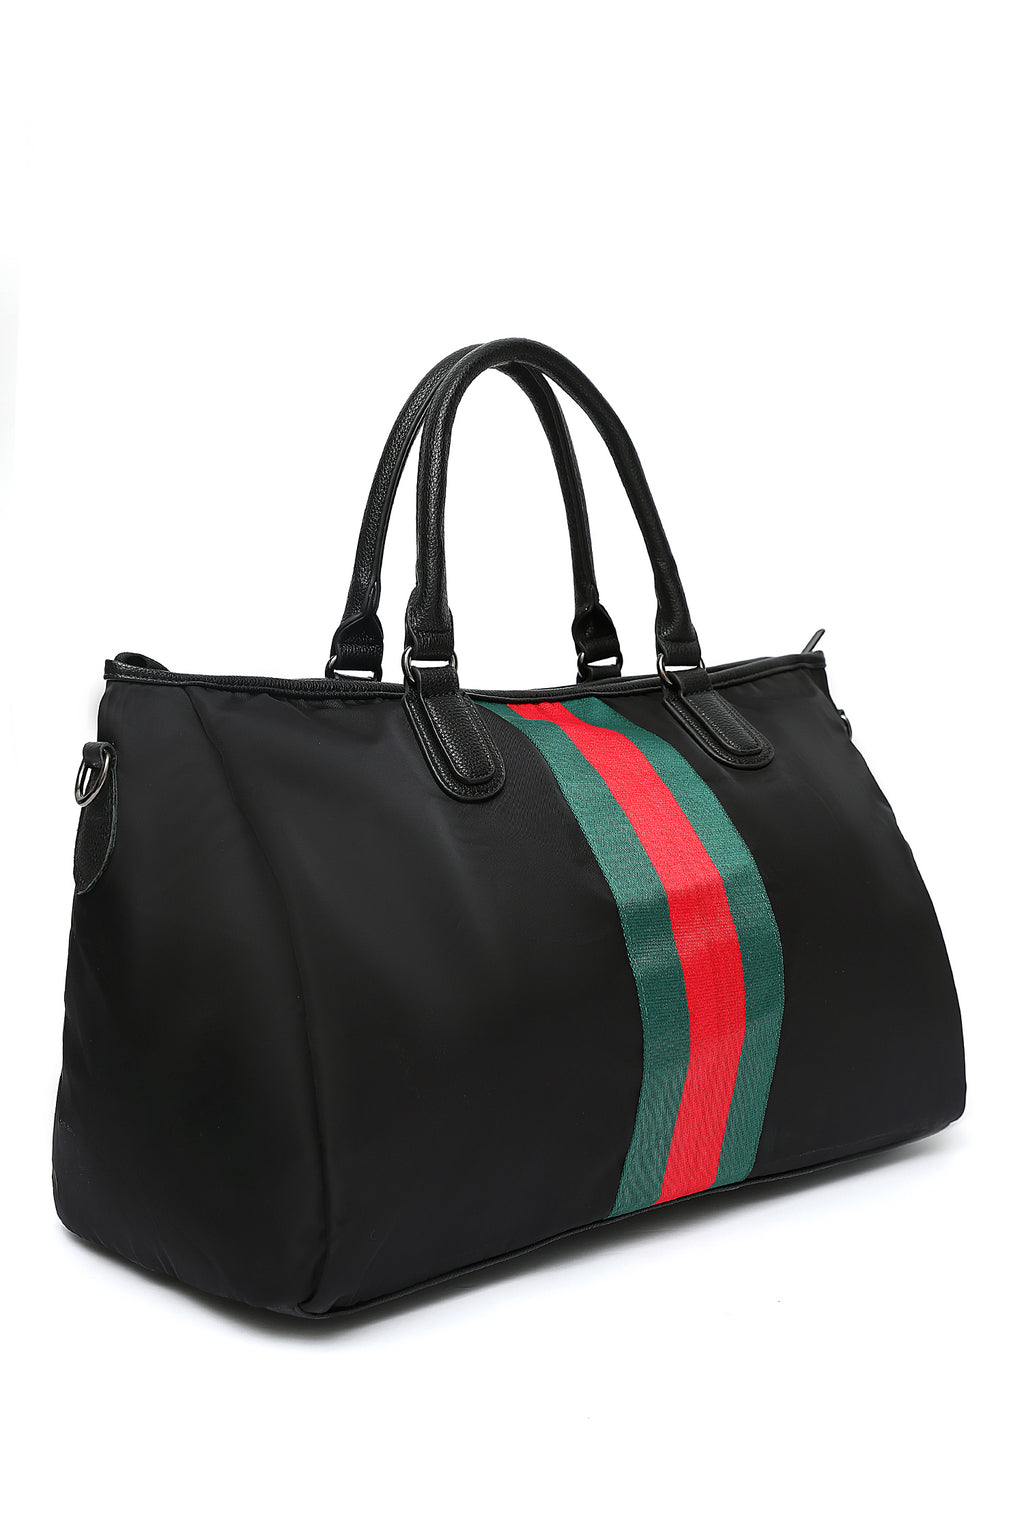 SPORTS STRIPE DUFFLE-BLACK-GREEN-RED